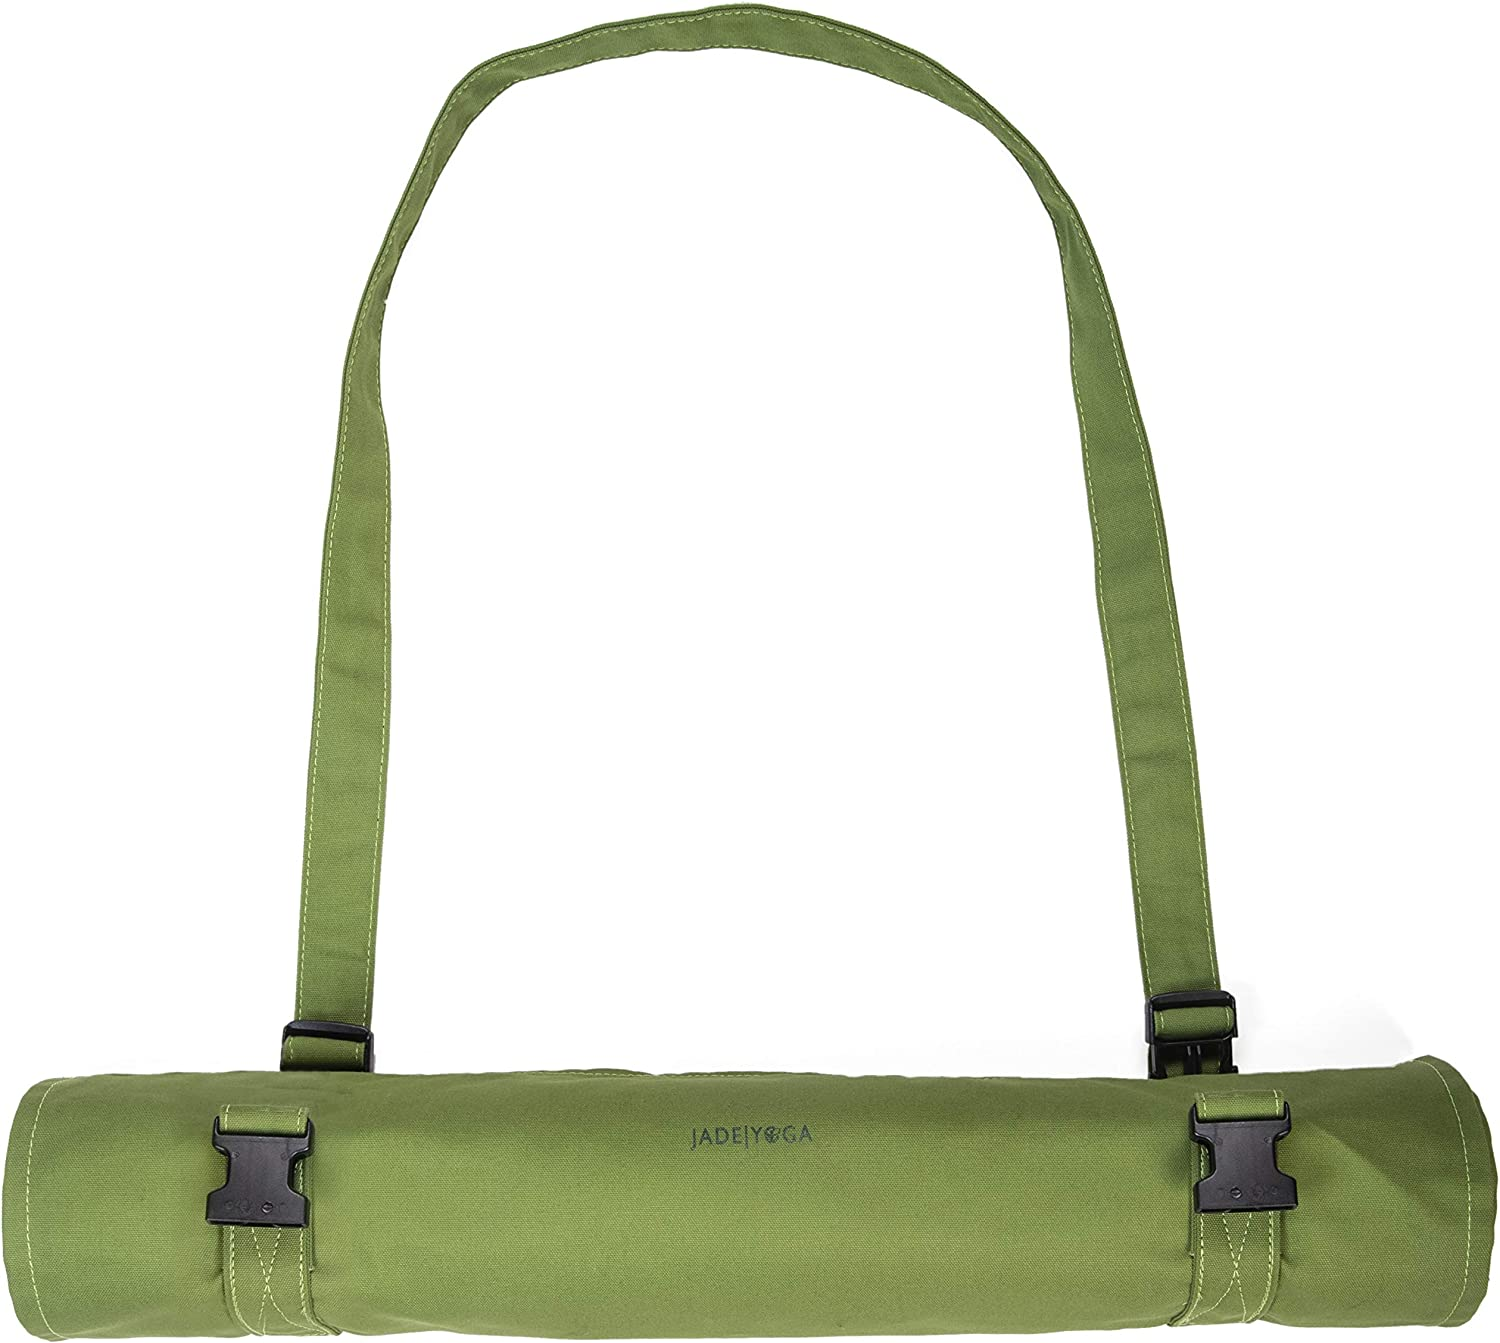 Amazon.com: Jade Yoga Parkia Mat Carrier: Sports & Outdoors